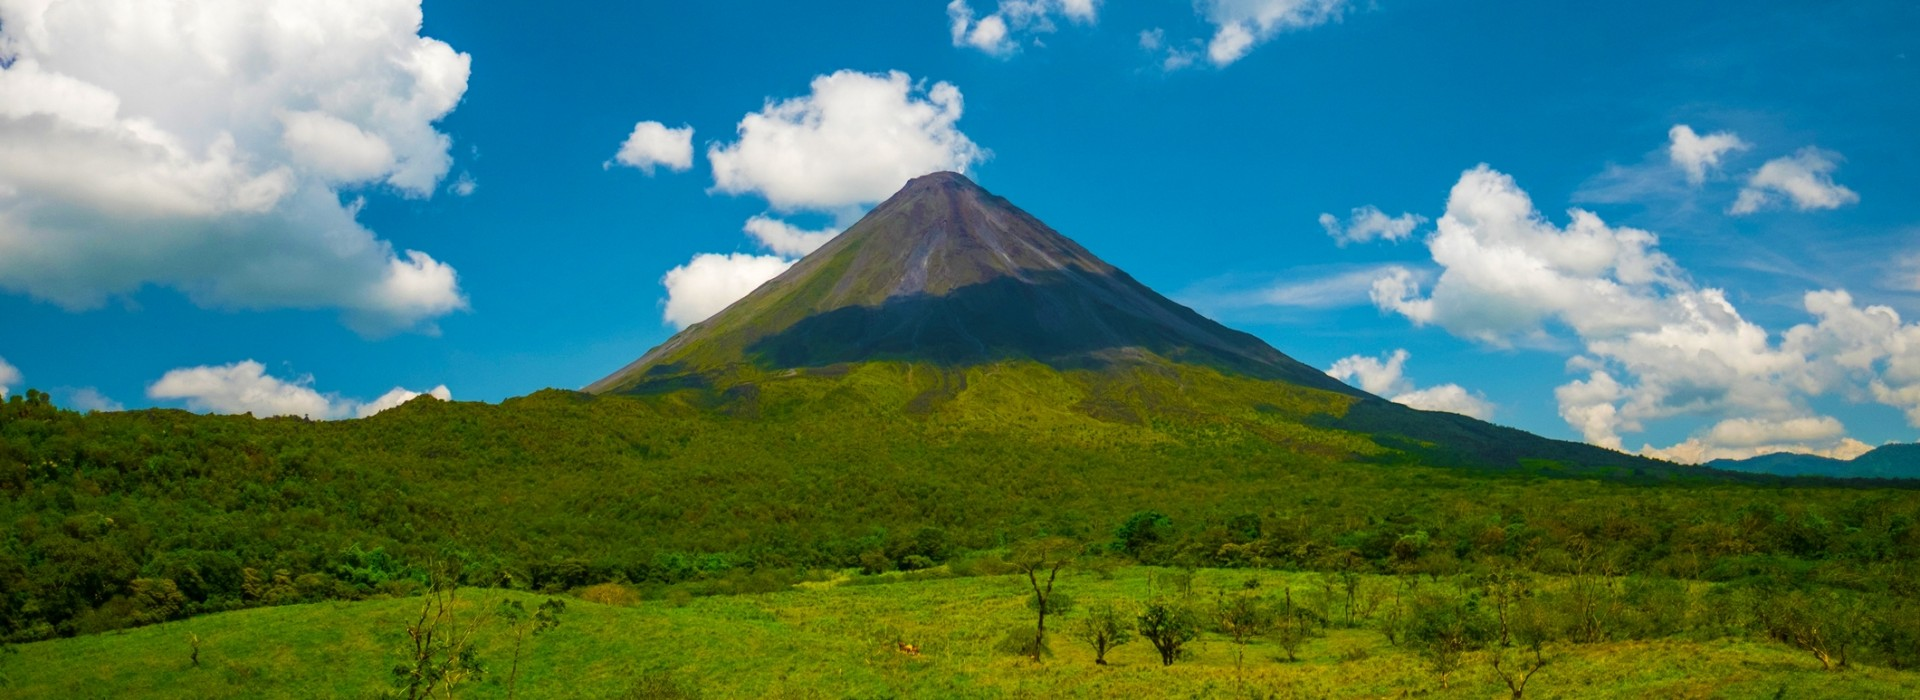 Arenal Volcano is a sight to behold in Costa Rica